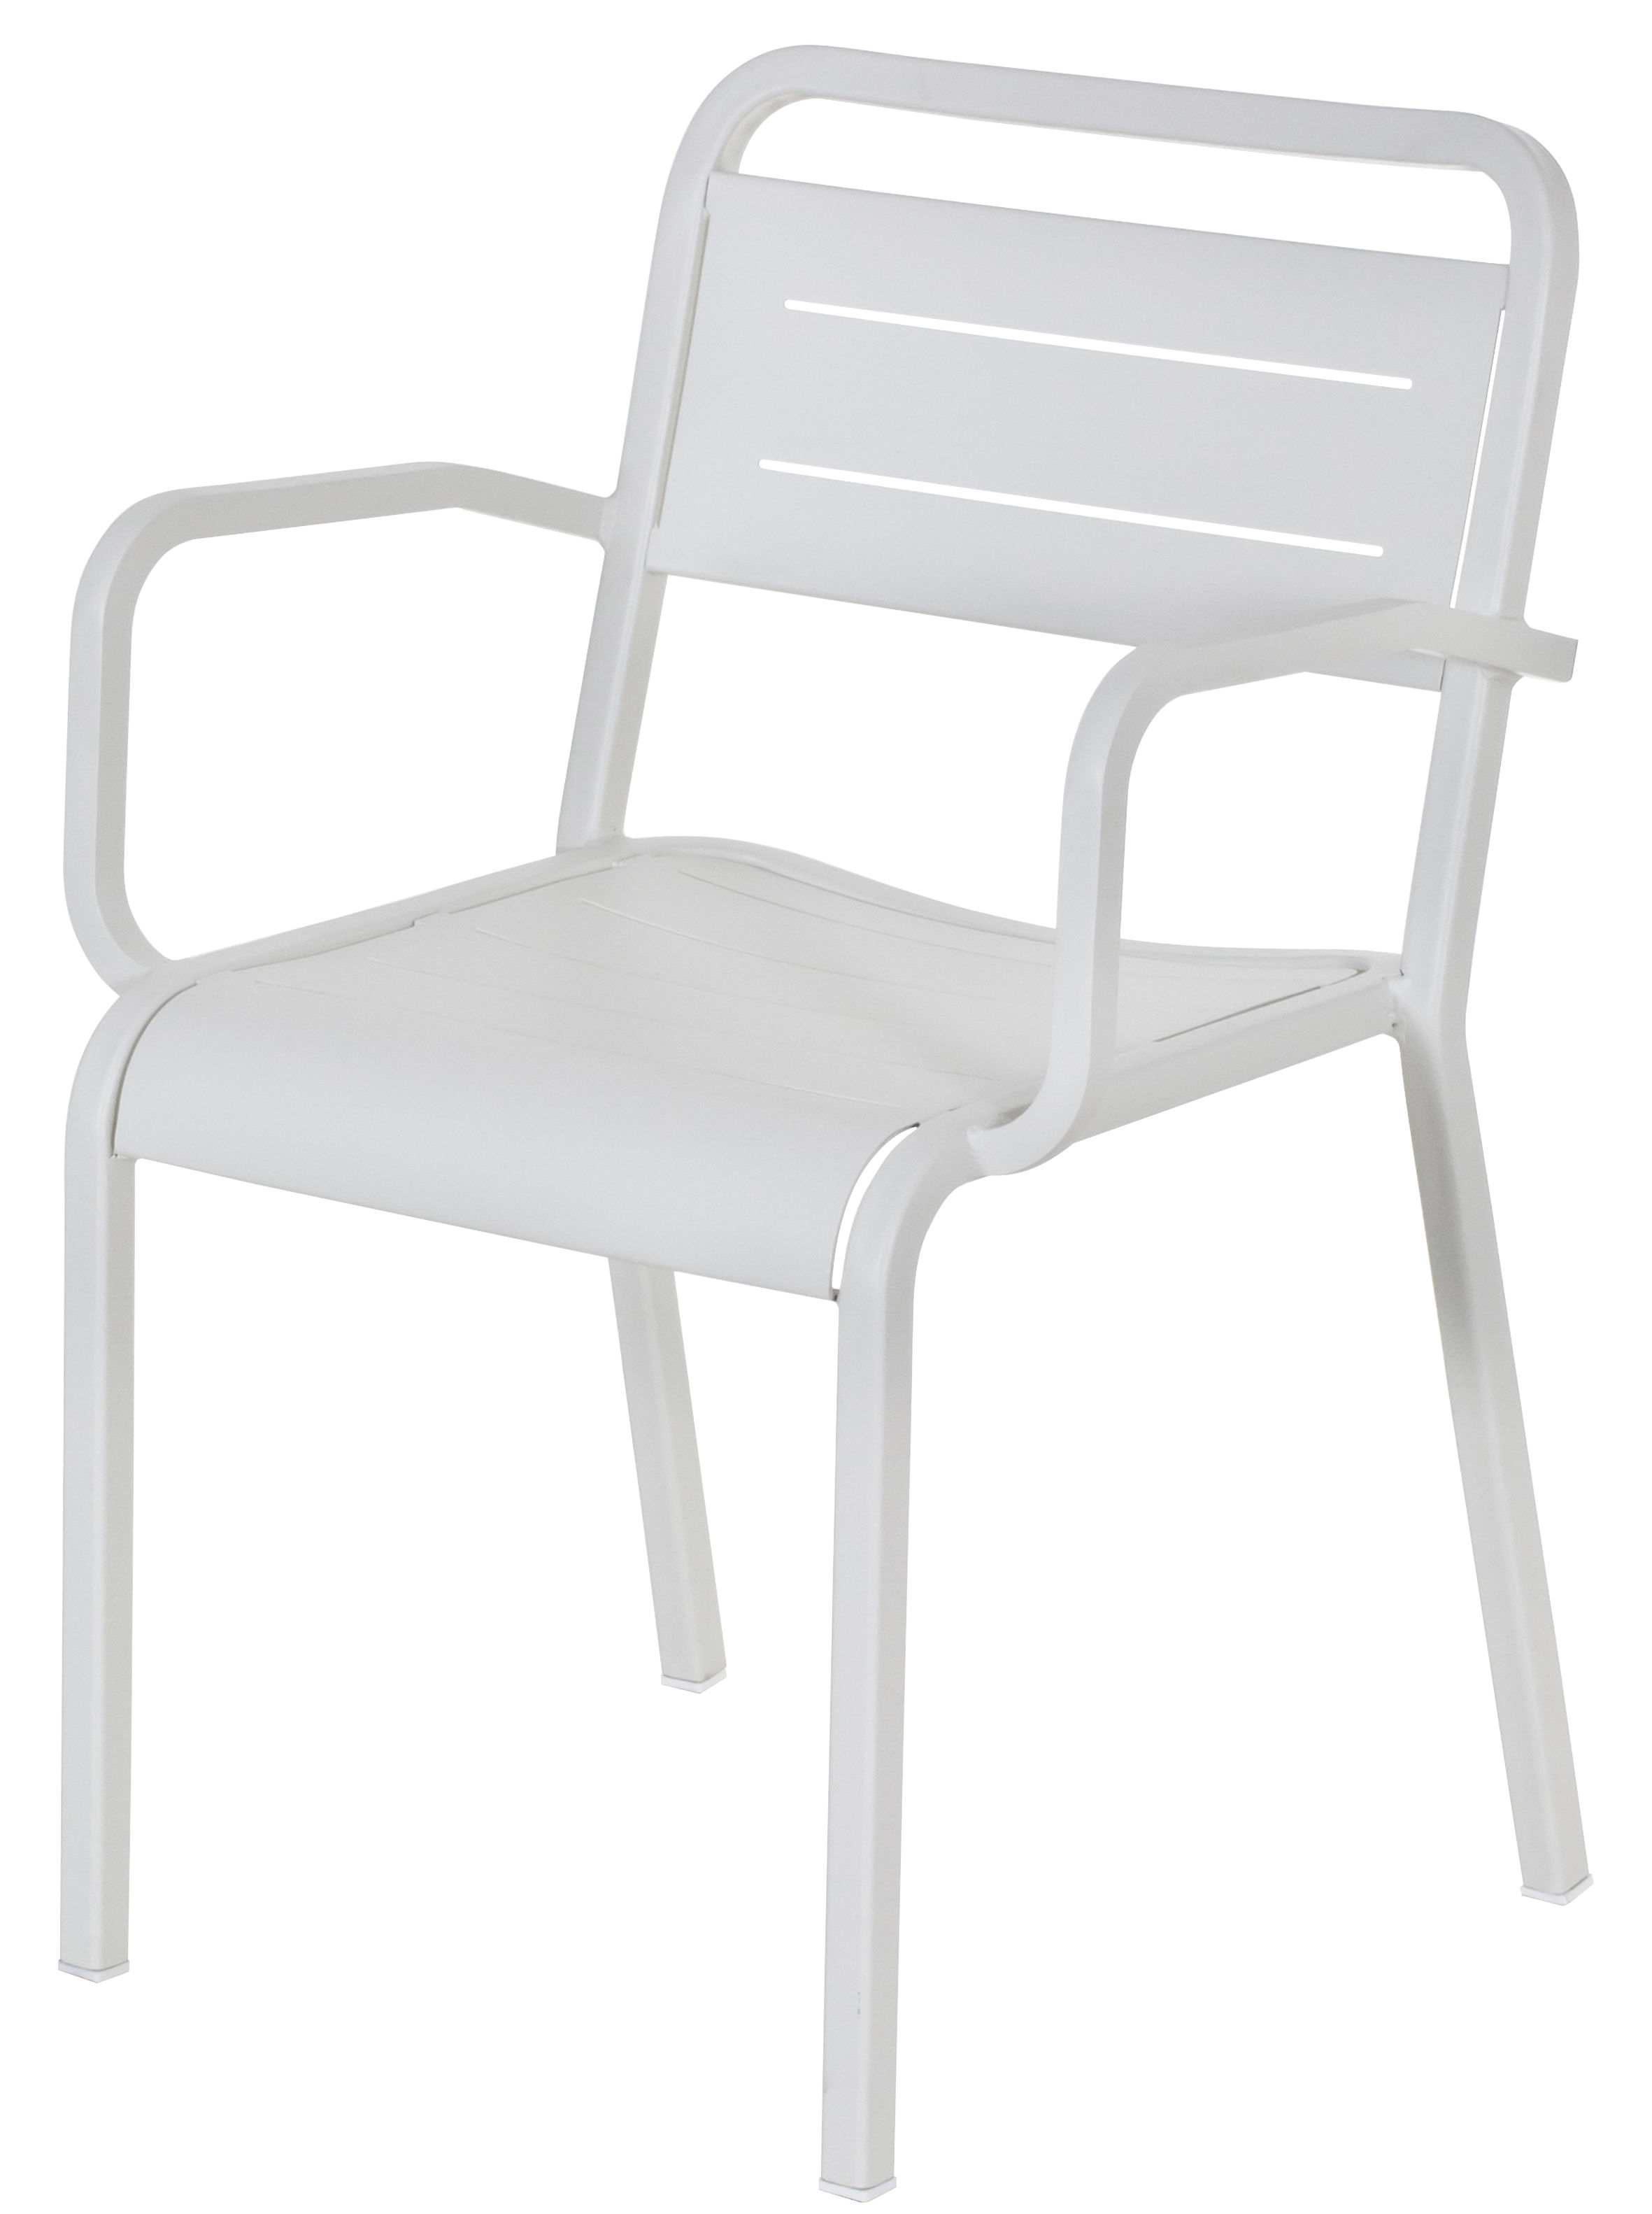 Furniture - Chairs - Urban Stackable armchair - Metal by Emu - White - Varnished aluminium